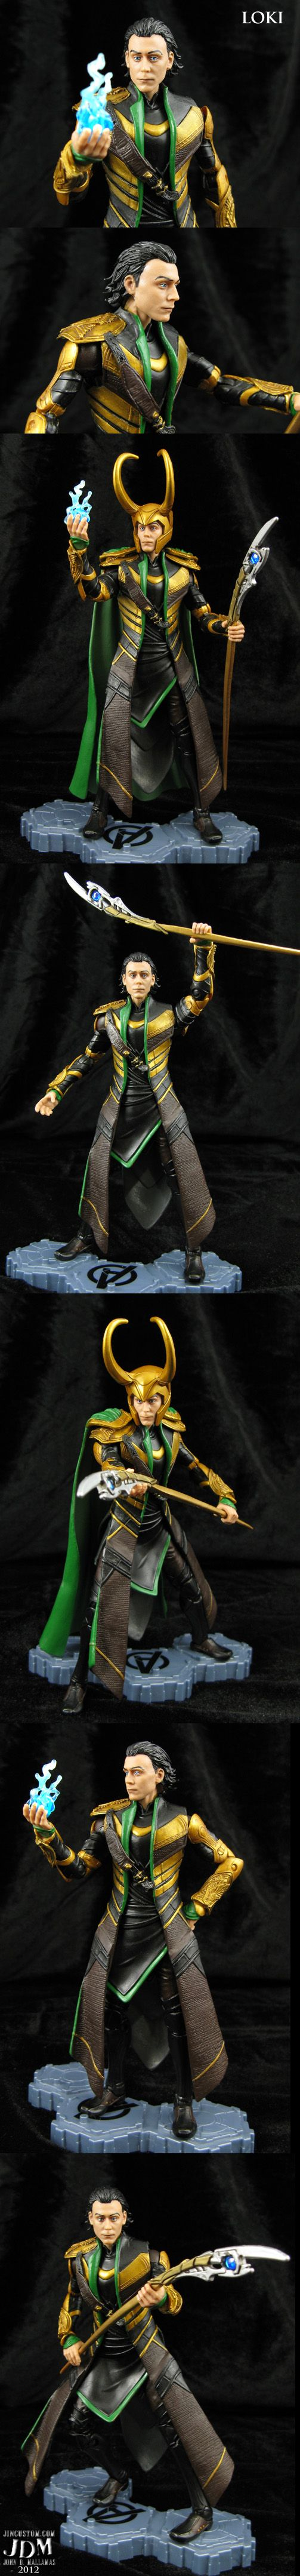 Custom Avengers Movie Loki with wispy hair tips by Jin-Saotome.deviantart.com